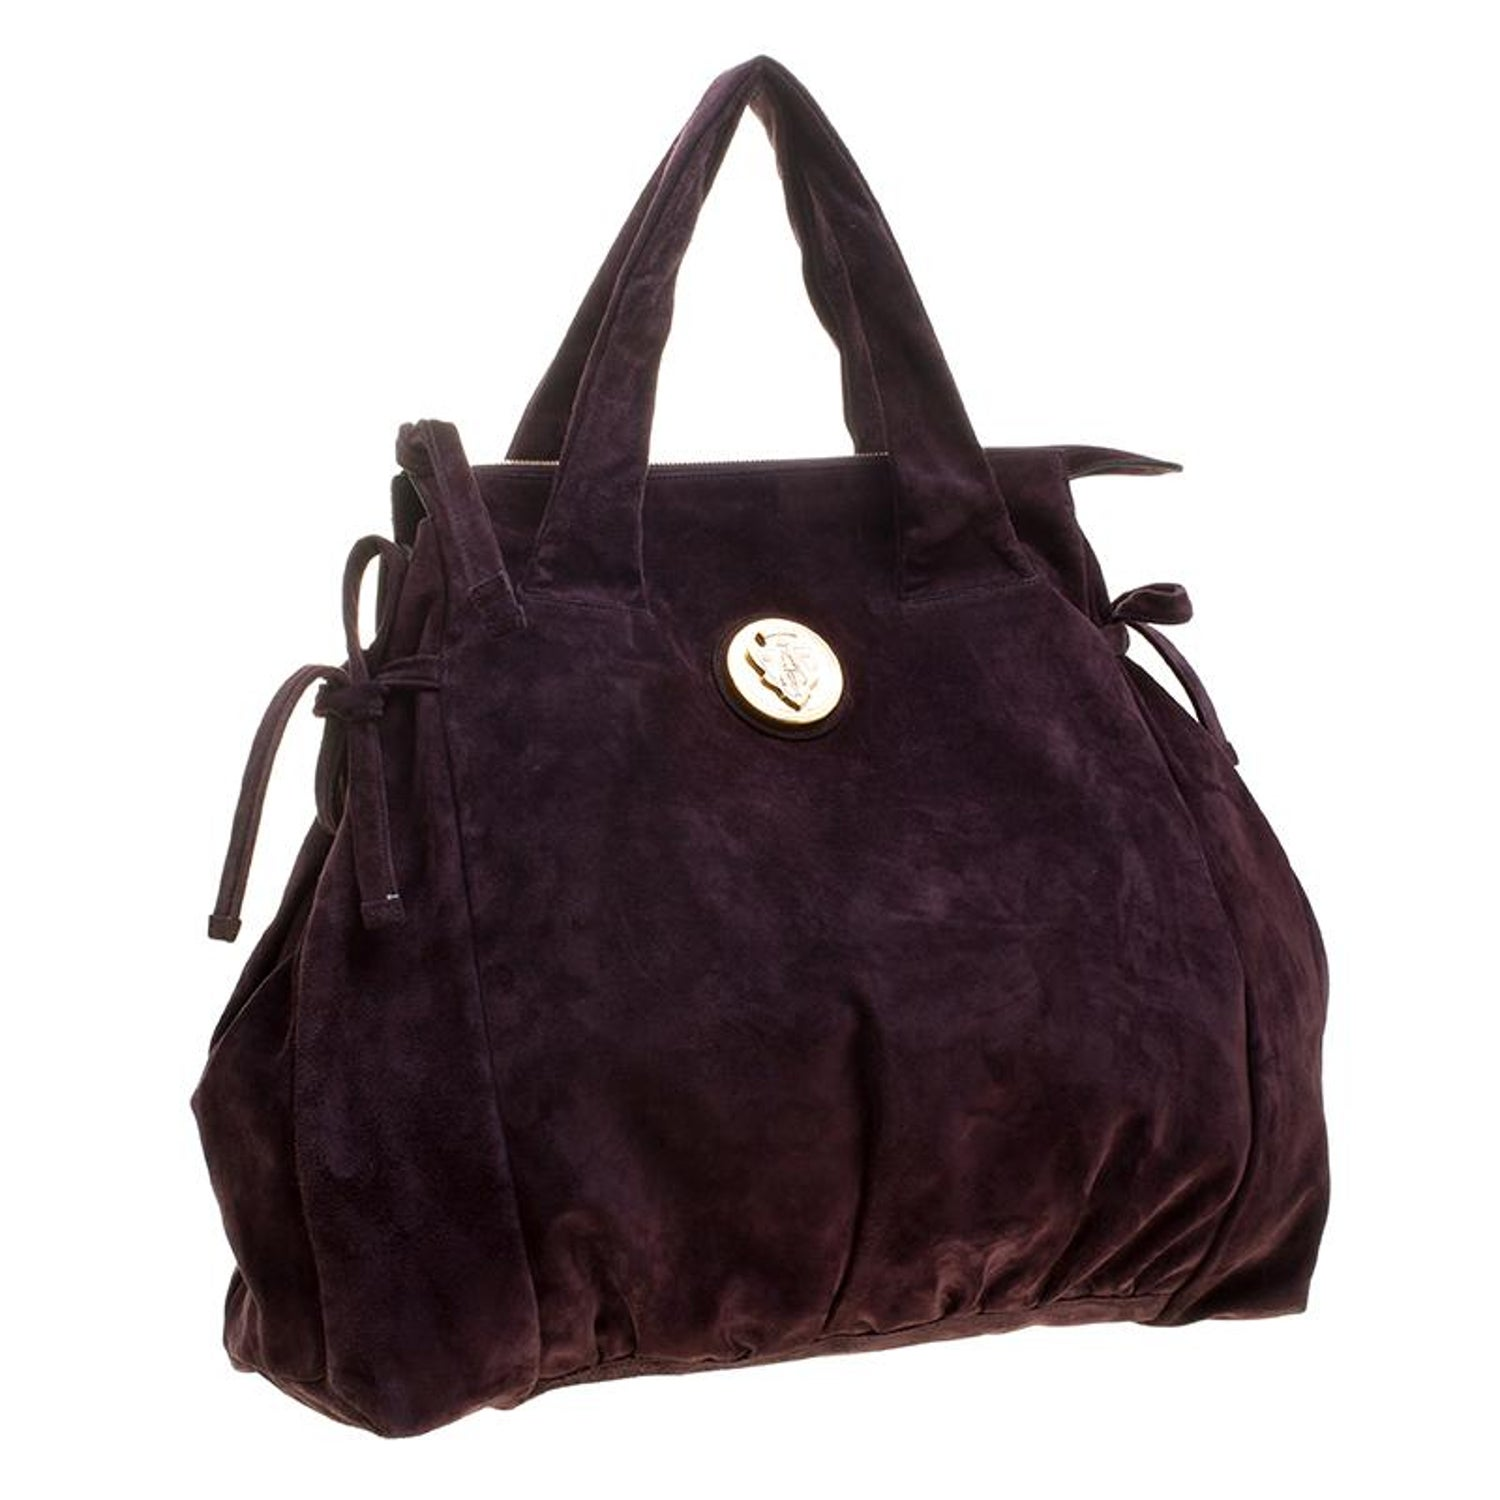 cbff4b124d0030 Gucci Purple Suede Large Hysteria Satchel For Sale at 1stdibs